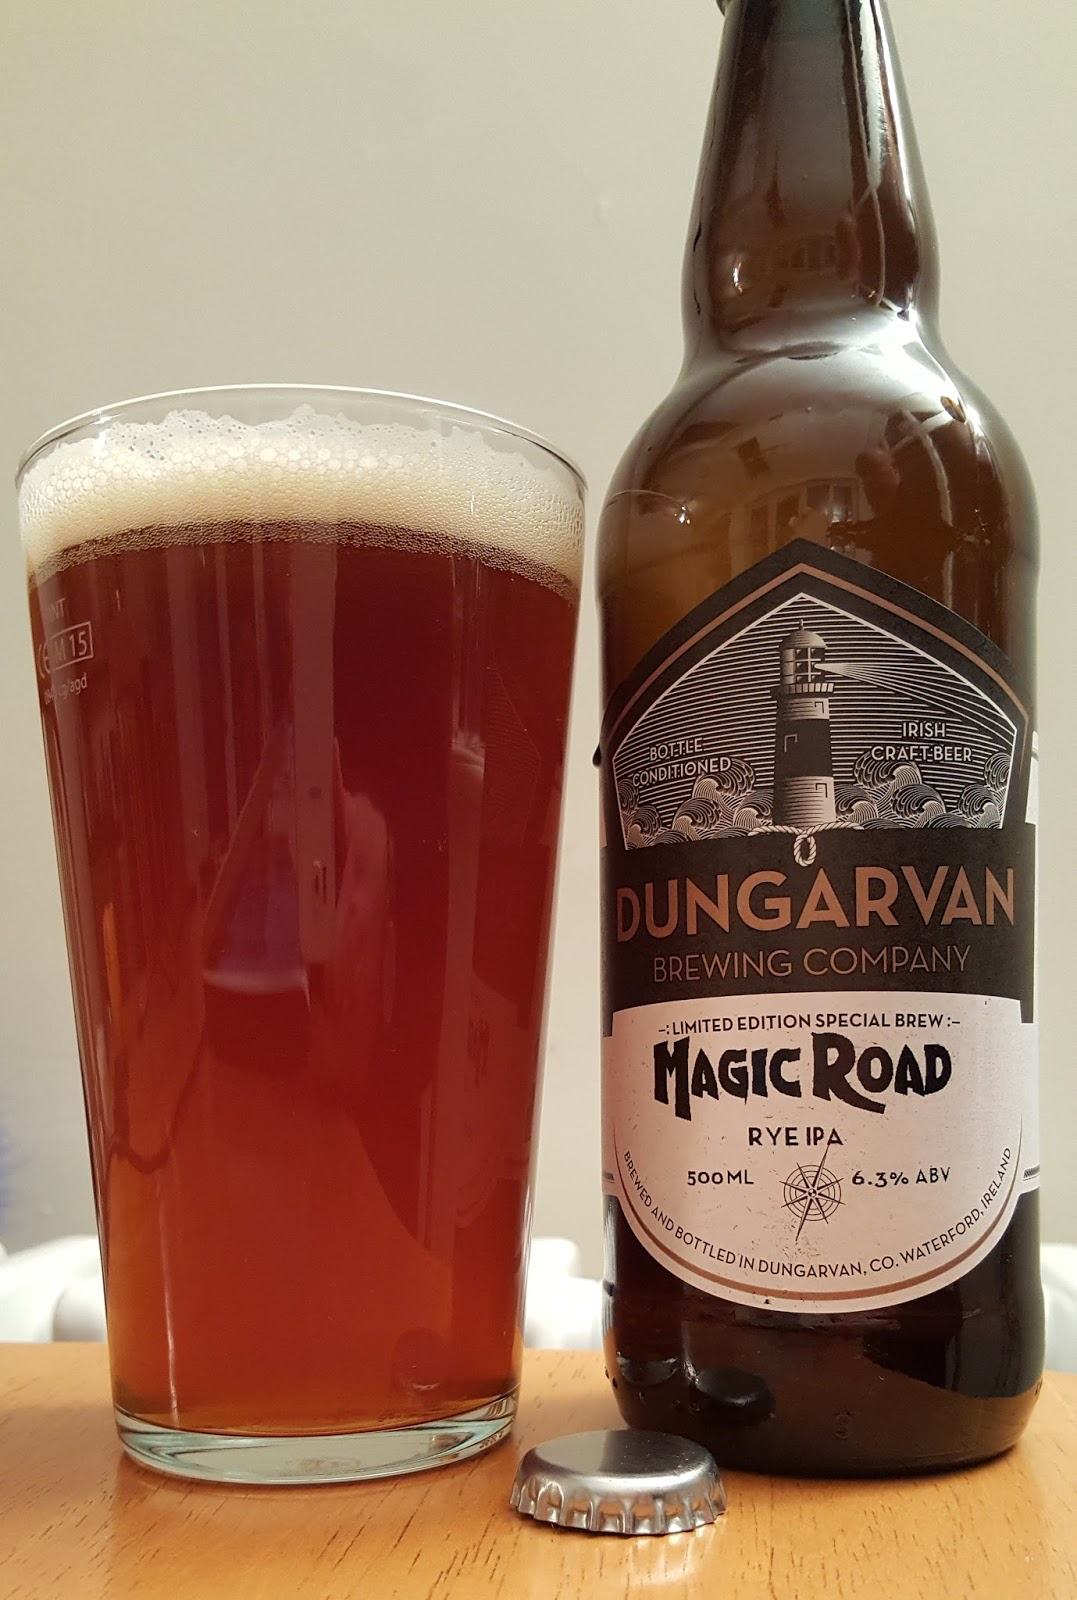 No Sooner Had I Put That Away Than Magic Road Rye Ipa Had Appeared It Poured A Bit Flat But Did Manage A Head While Also Pumping Out A Heavy Grand